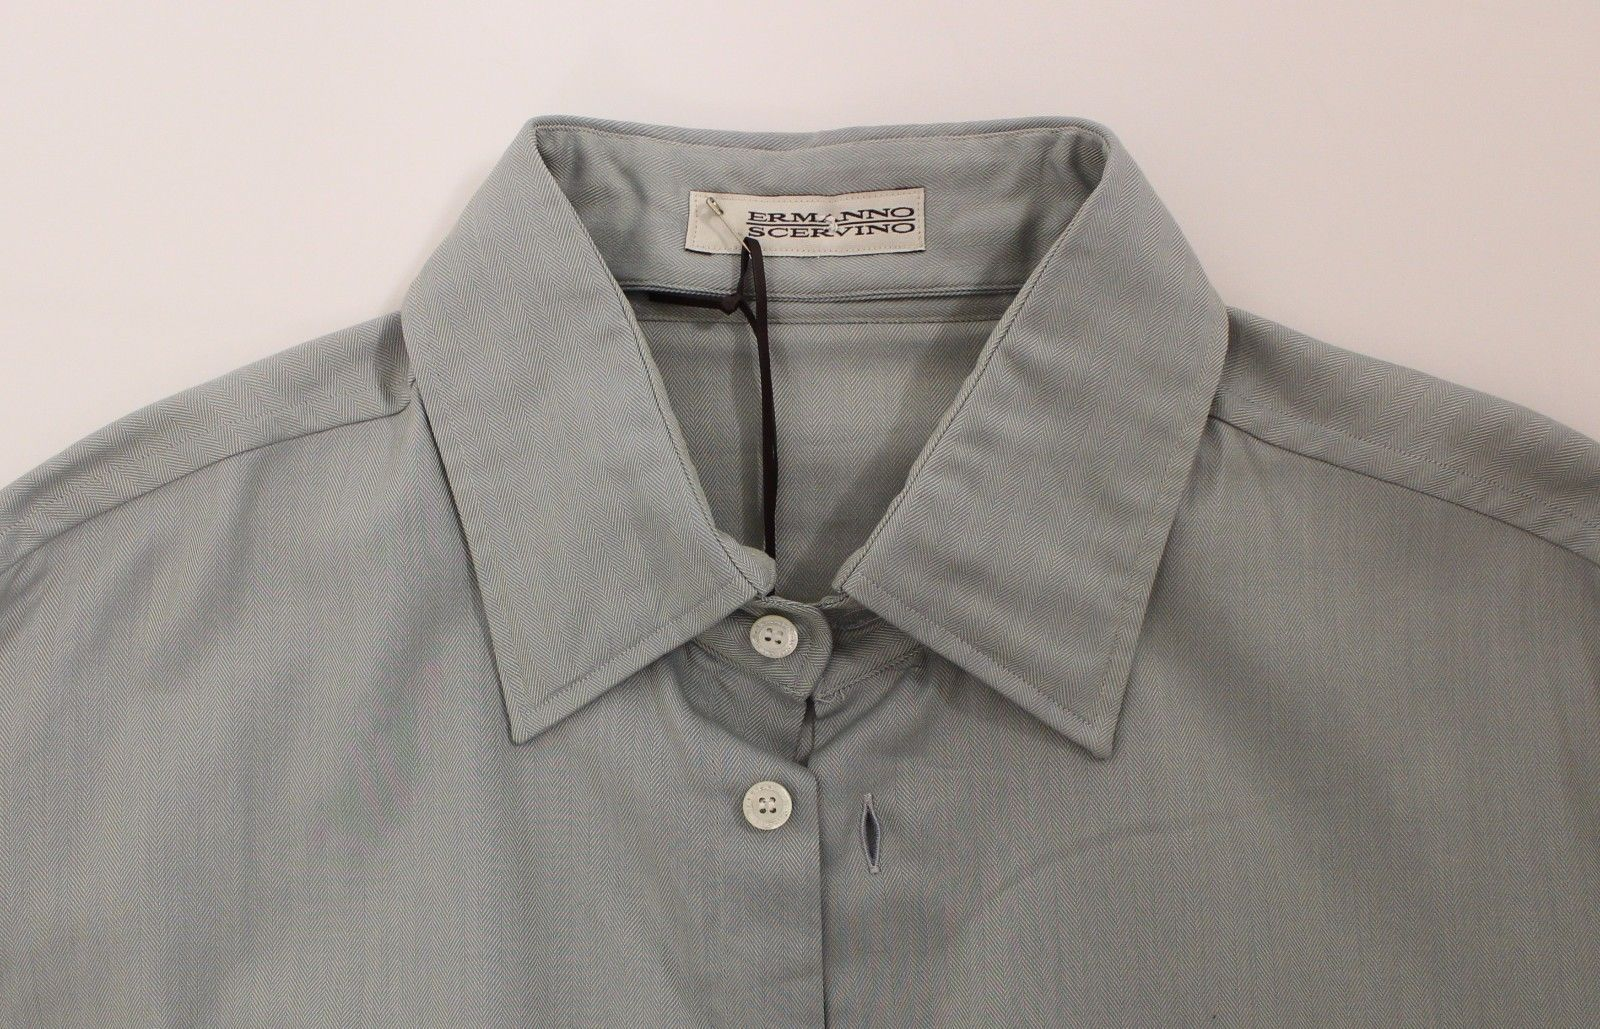 Ermanno Scervino Gray Cotton Long Sleeve Casual Shirt Top